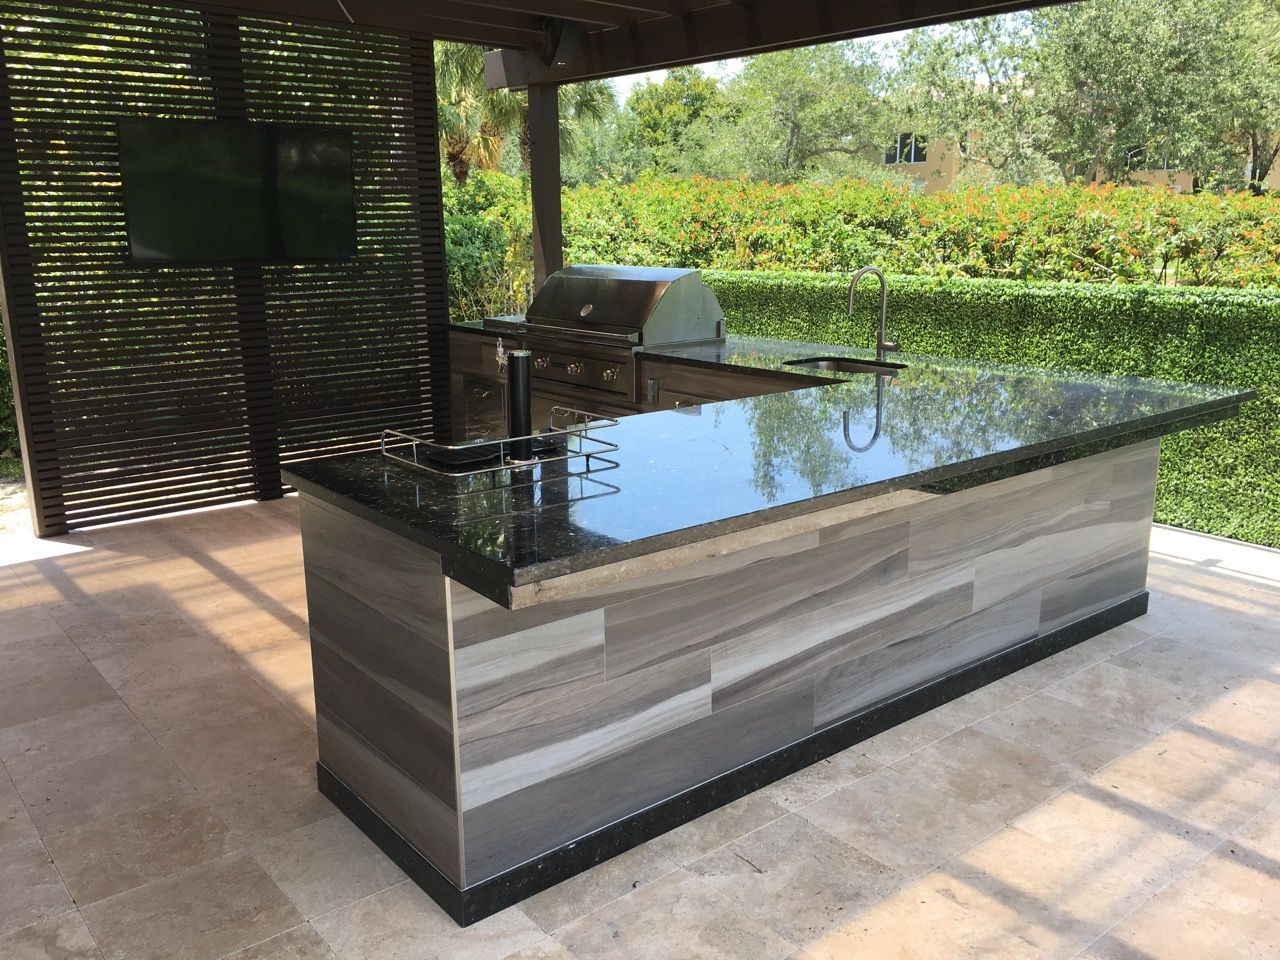 Luxapatio Is South Florida S First Choice For Outdoor Kitchens And Outdoor Kitchen Appliances Visit Outdoor Kitchen Outdoor Bbq Kitchen Outdoor Kitchen Design